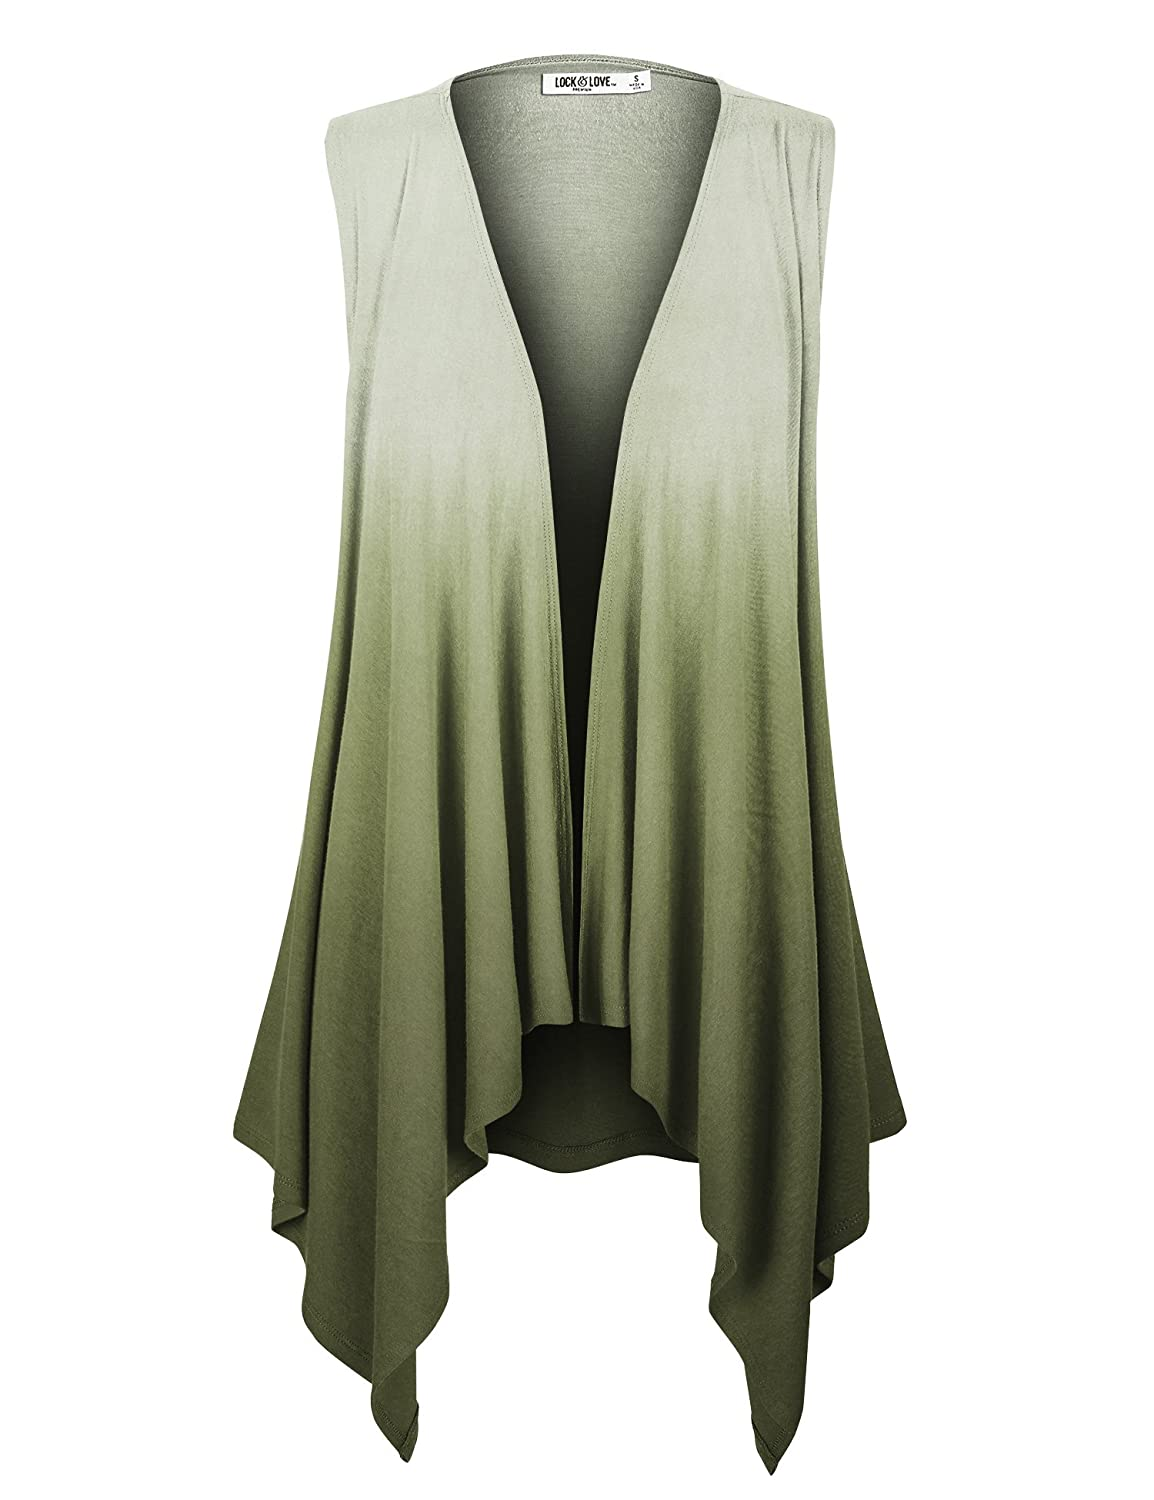 Lock and Love LL Womens Lightweight Sleeveless Ombre Open Front Cardigan Vest - Made in USA LLWSK1095